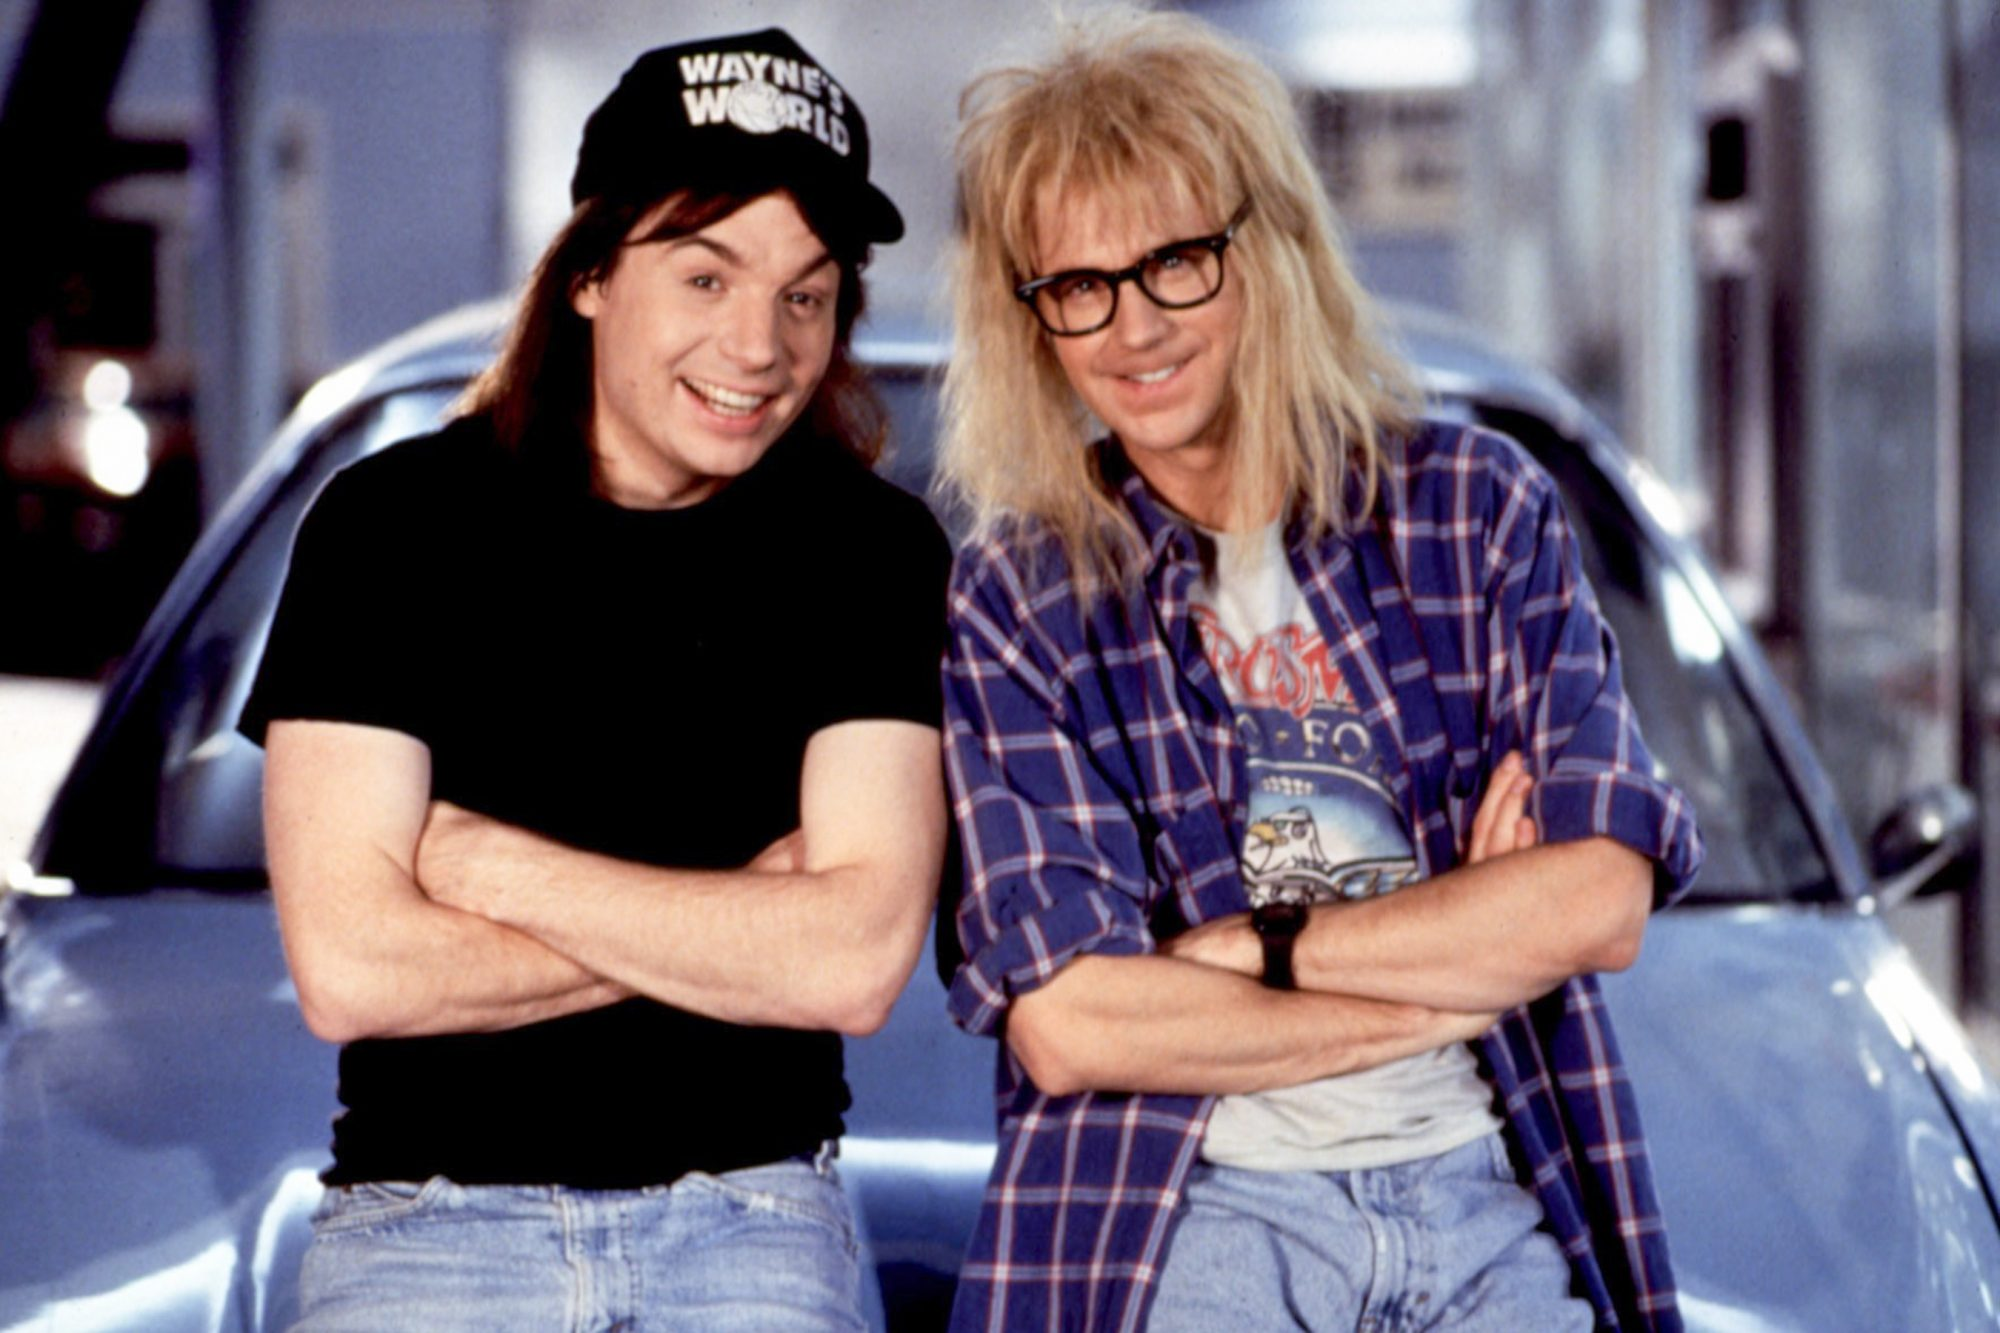 WAYNE'S WORLD, Mike Myers, Dana Carvey, 1992